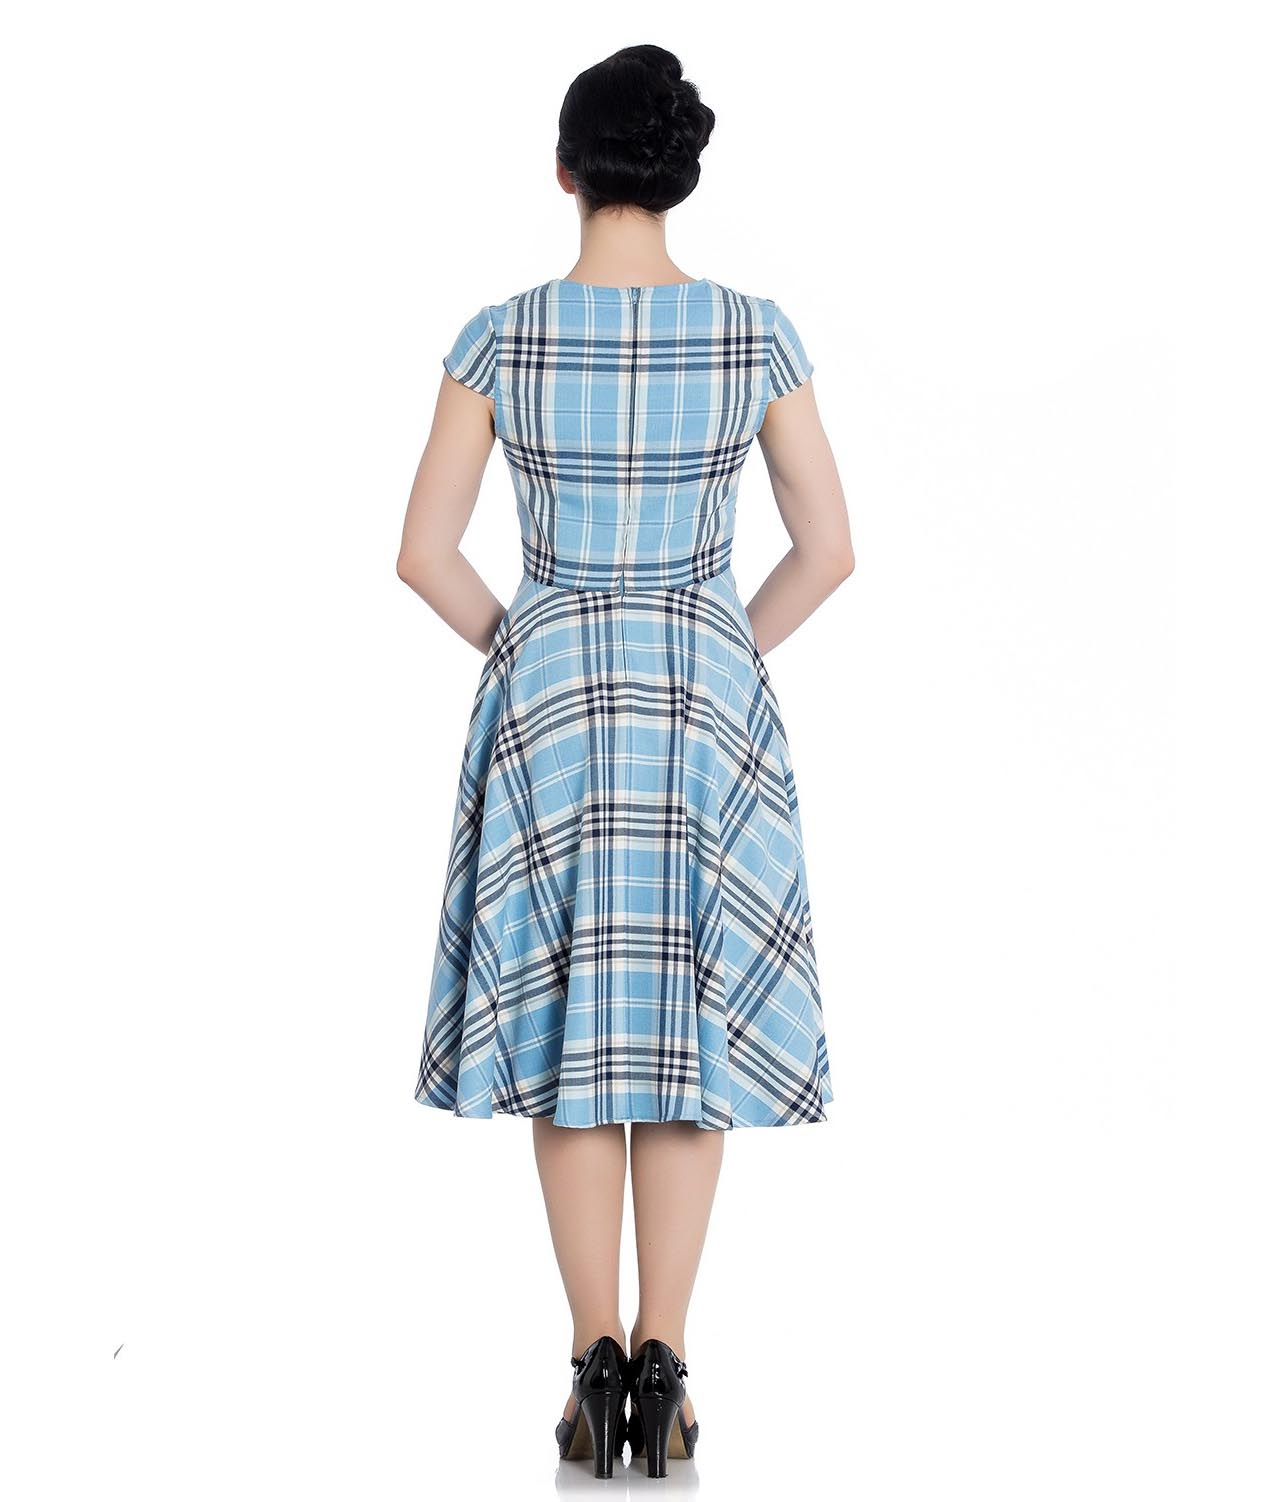 Hell-Bunny-Pinup-50s-Dress-ABERDEEN-Hogmony-Sky-Blue-amp-White-Tartan-All-Sizes thumbnail 13